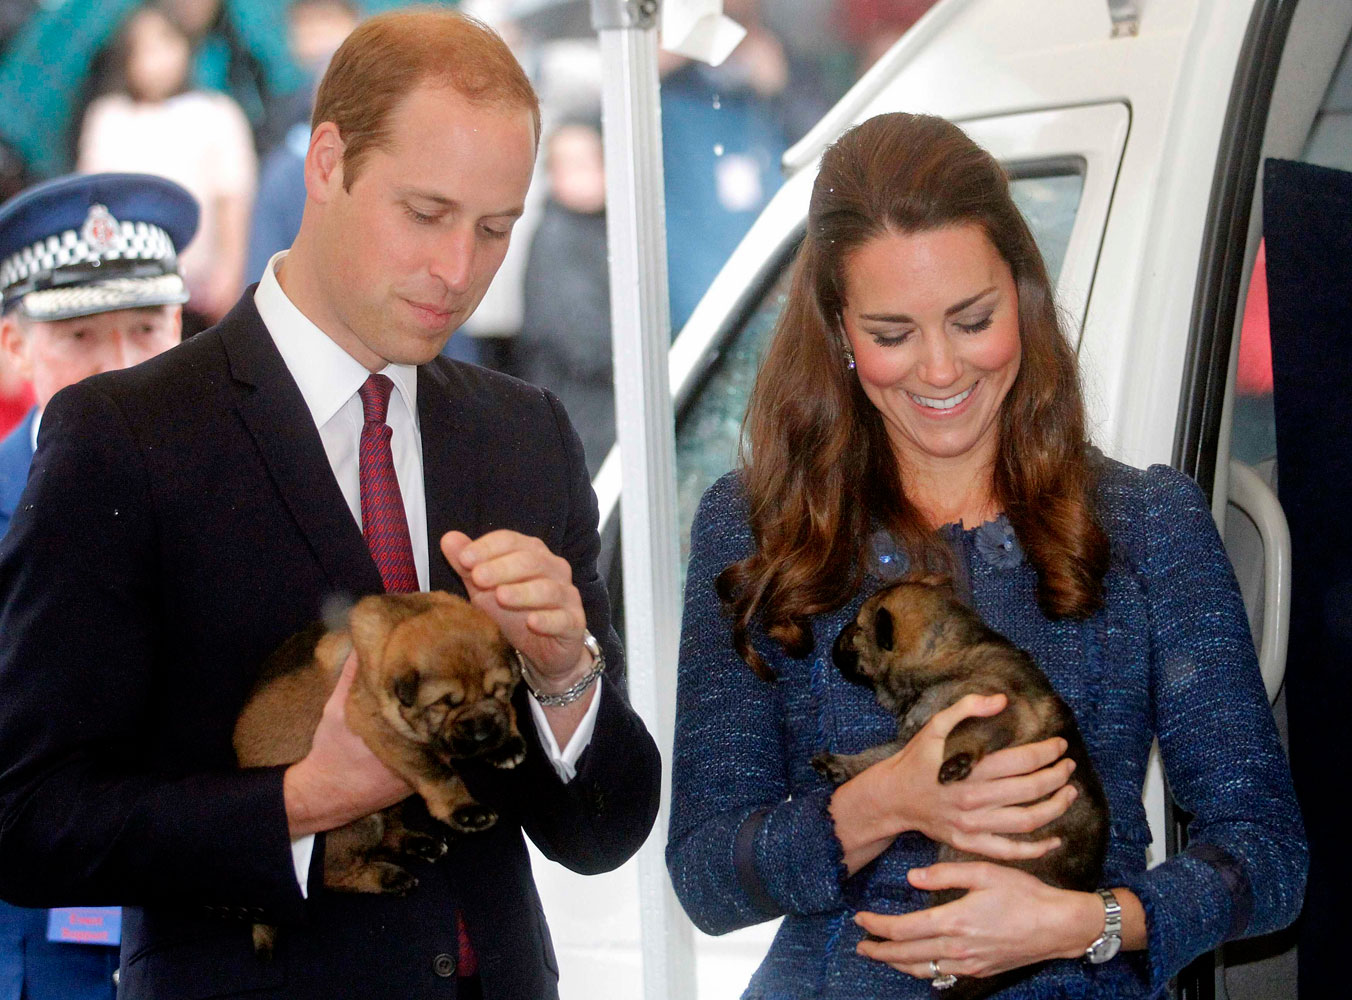 <strong>Focus on the Puppies</strong>From left: Prince William, Duke of Cambridge, and Catherine, Duchess of Cambridge, hold police dog puppies at the Royal New Zealand Police College in Wellington, New Zealand, on April 16, 2014.